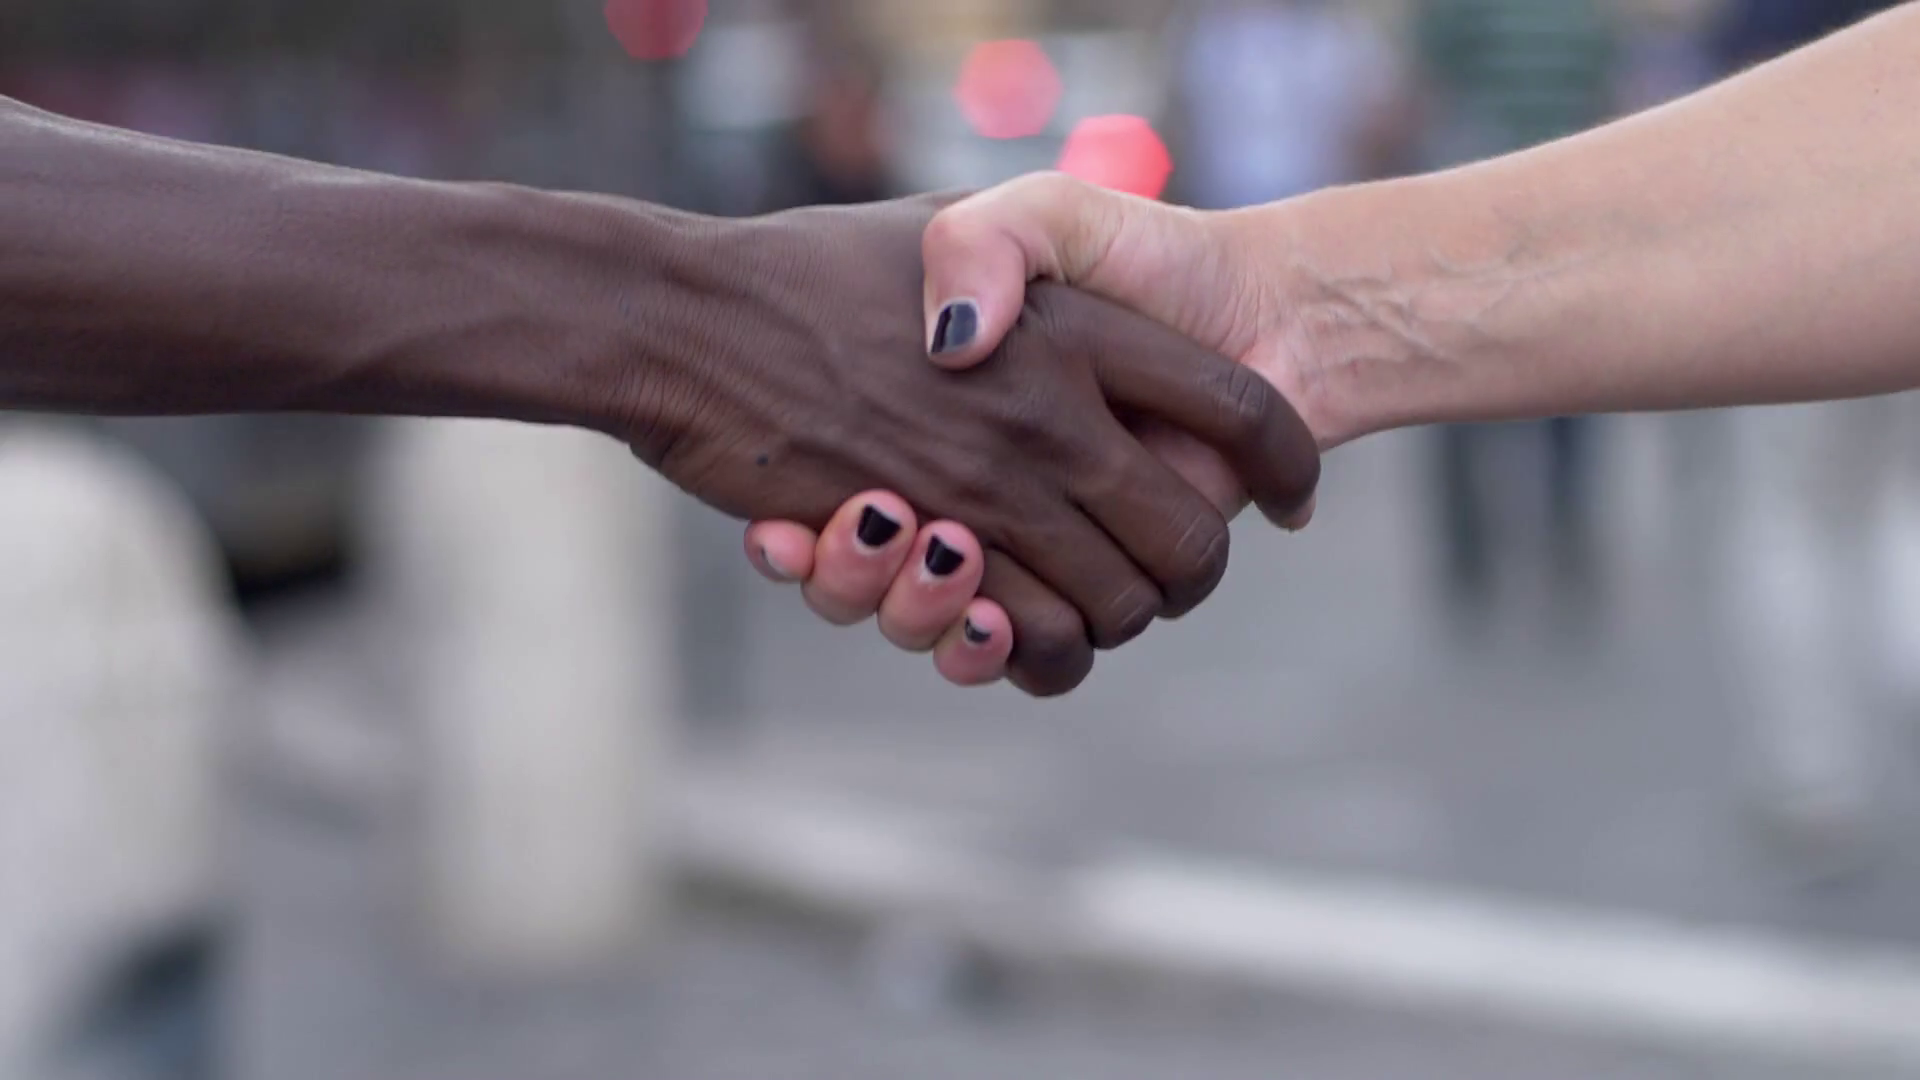 videoblocks-handshake-between-hand-of-black-man-and-white-woman-outdoor_rlphtvgo4m_thumbnail-full08